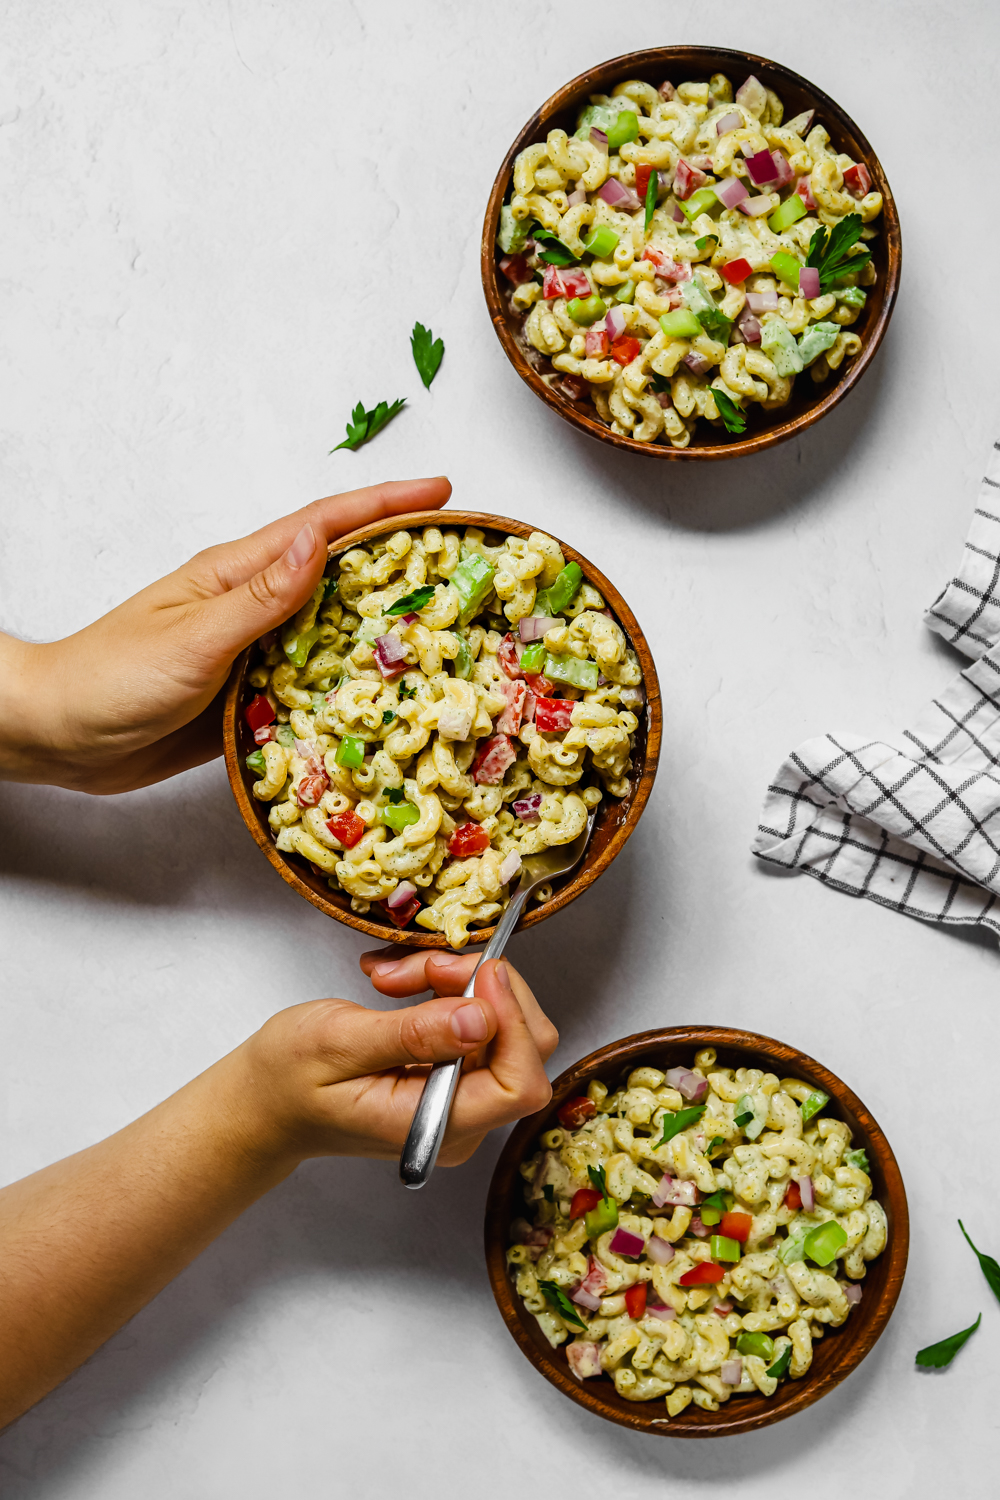 3 servings of vegan macaroni salad in small wooden bowls.